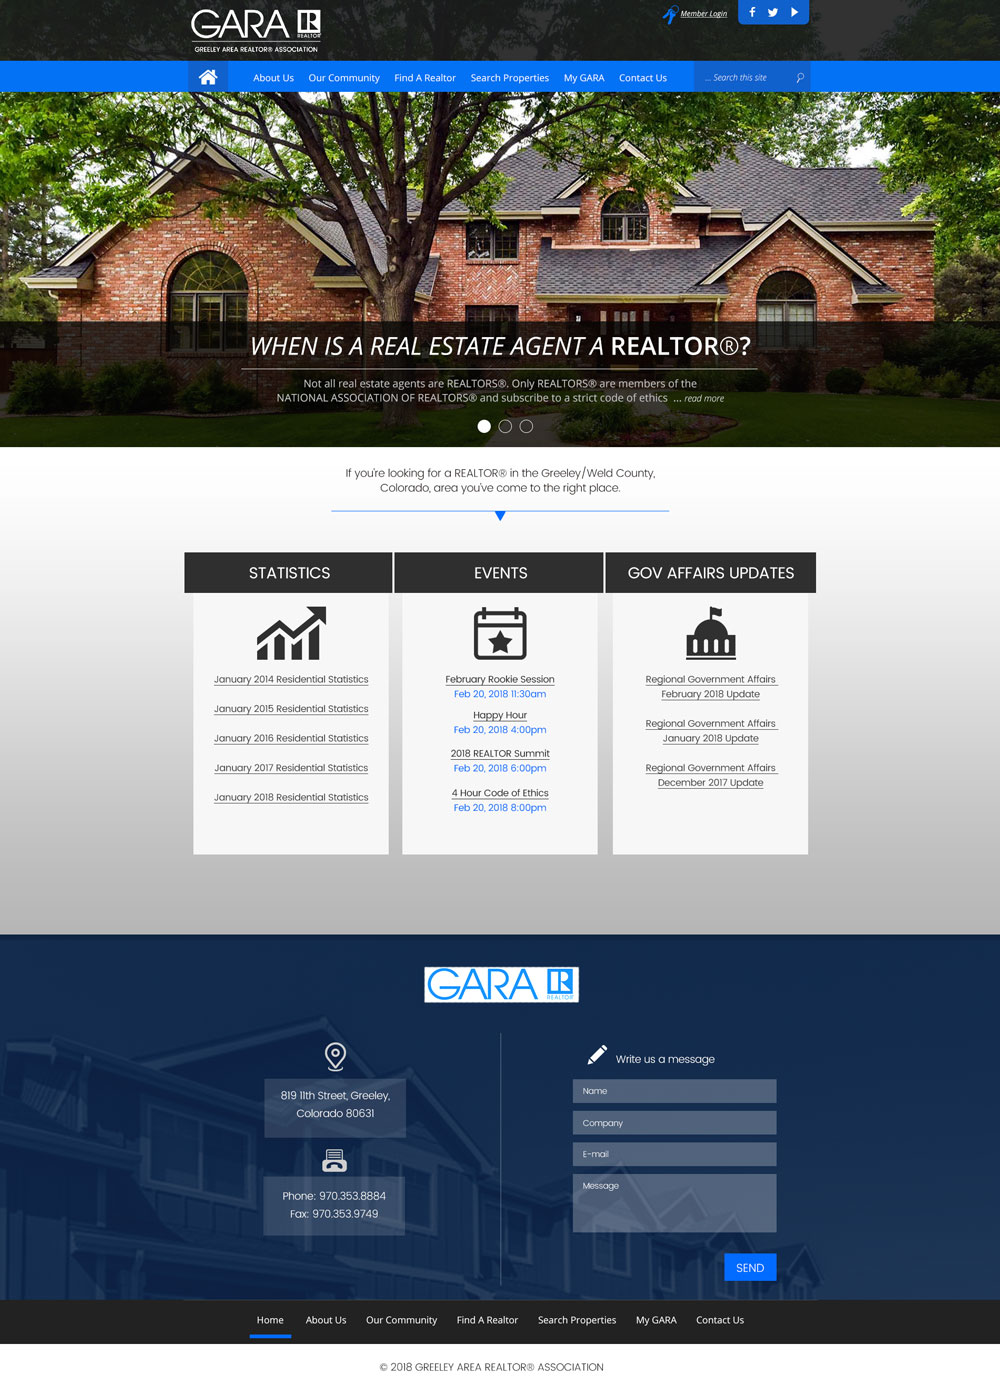 GARA Home Page Design